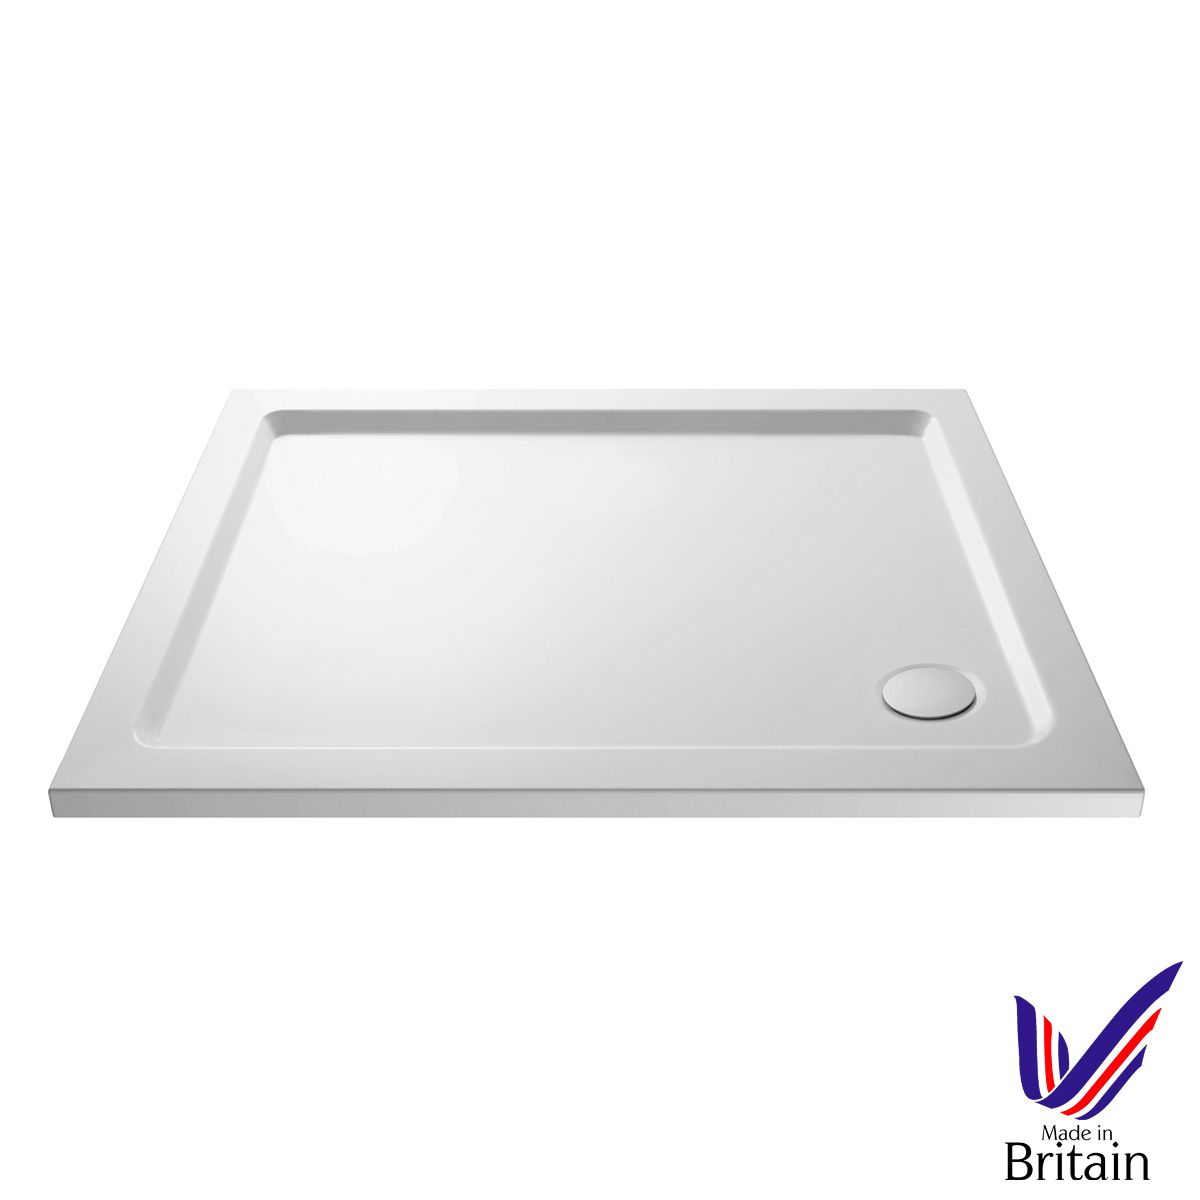 900 x 800 Shower Tray Rectangular Low Profile by Pearlstone